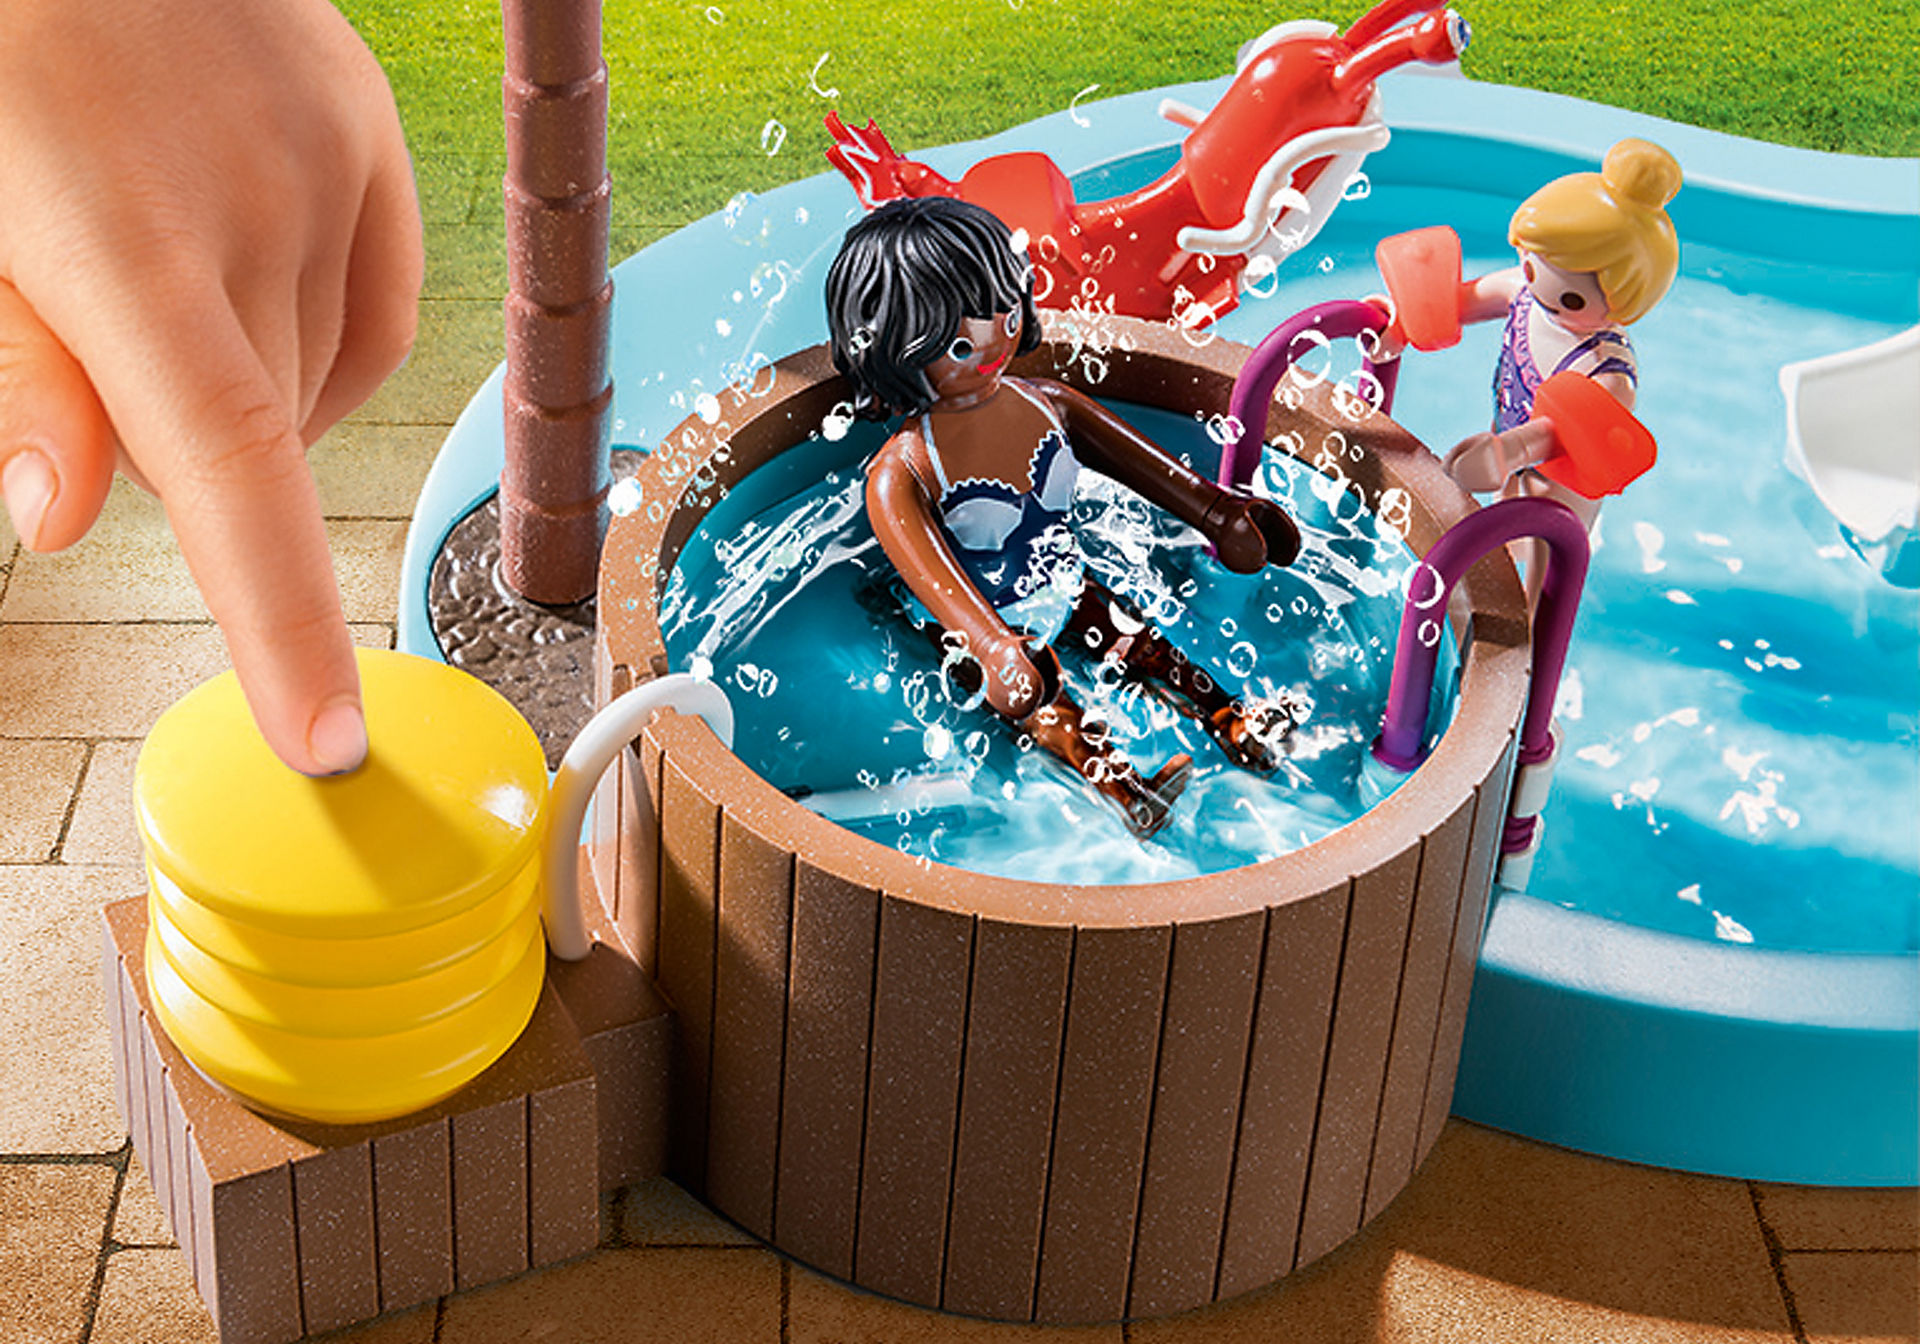 70611 Children's Pool with Slide zoom image4